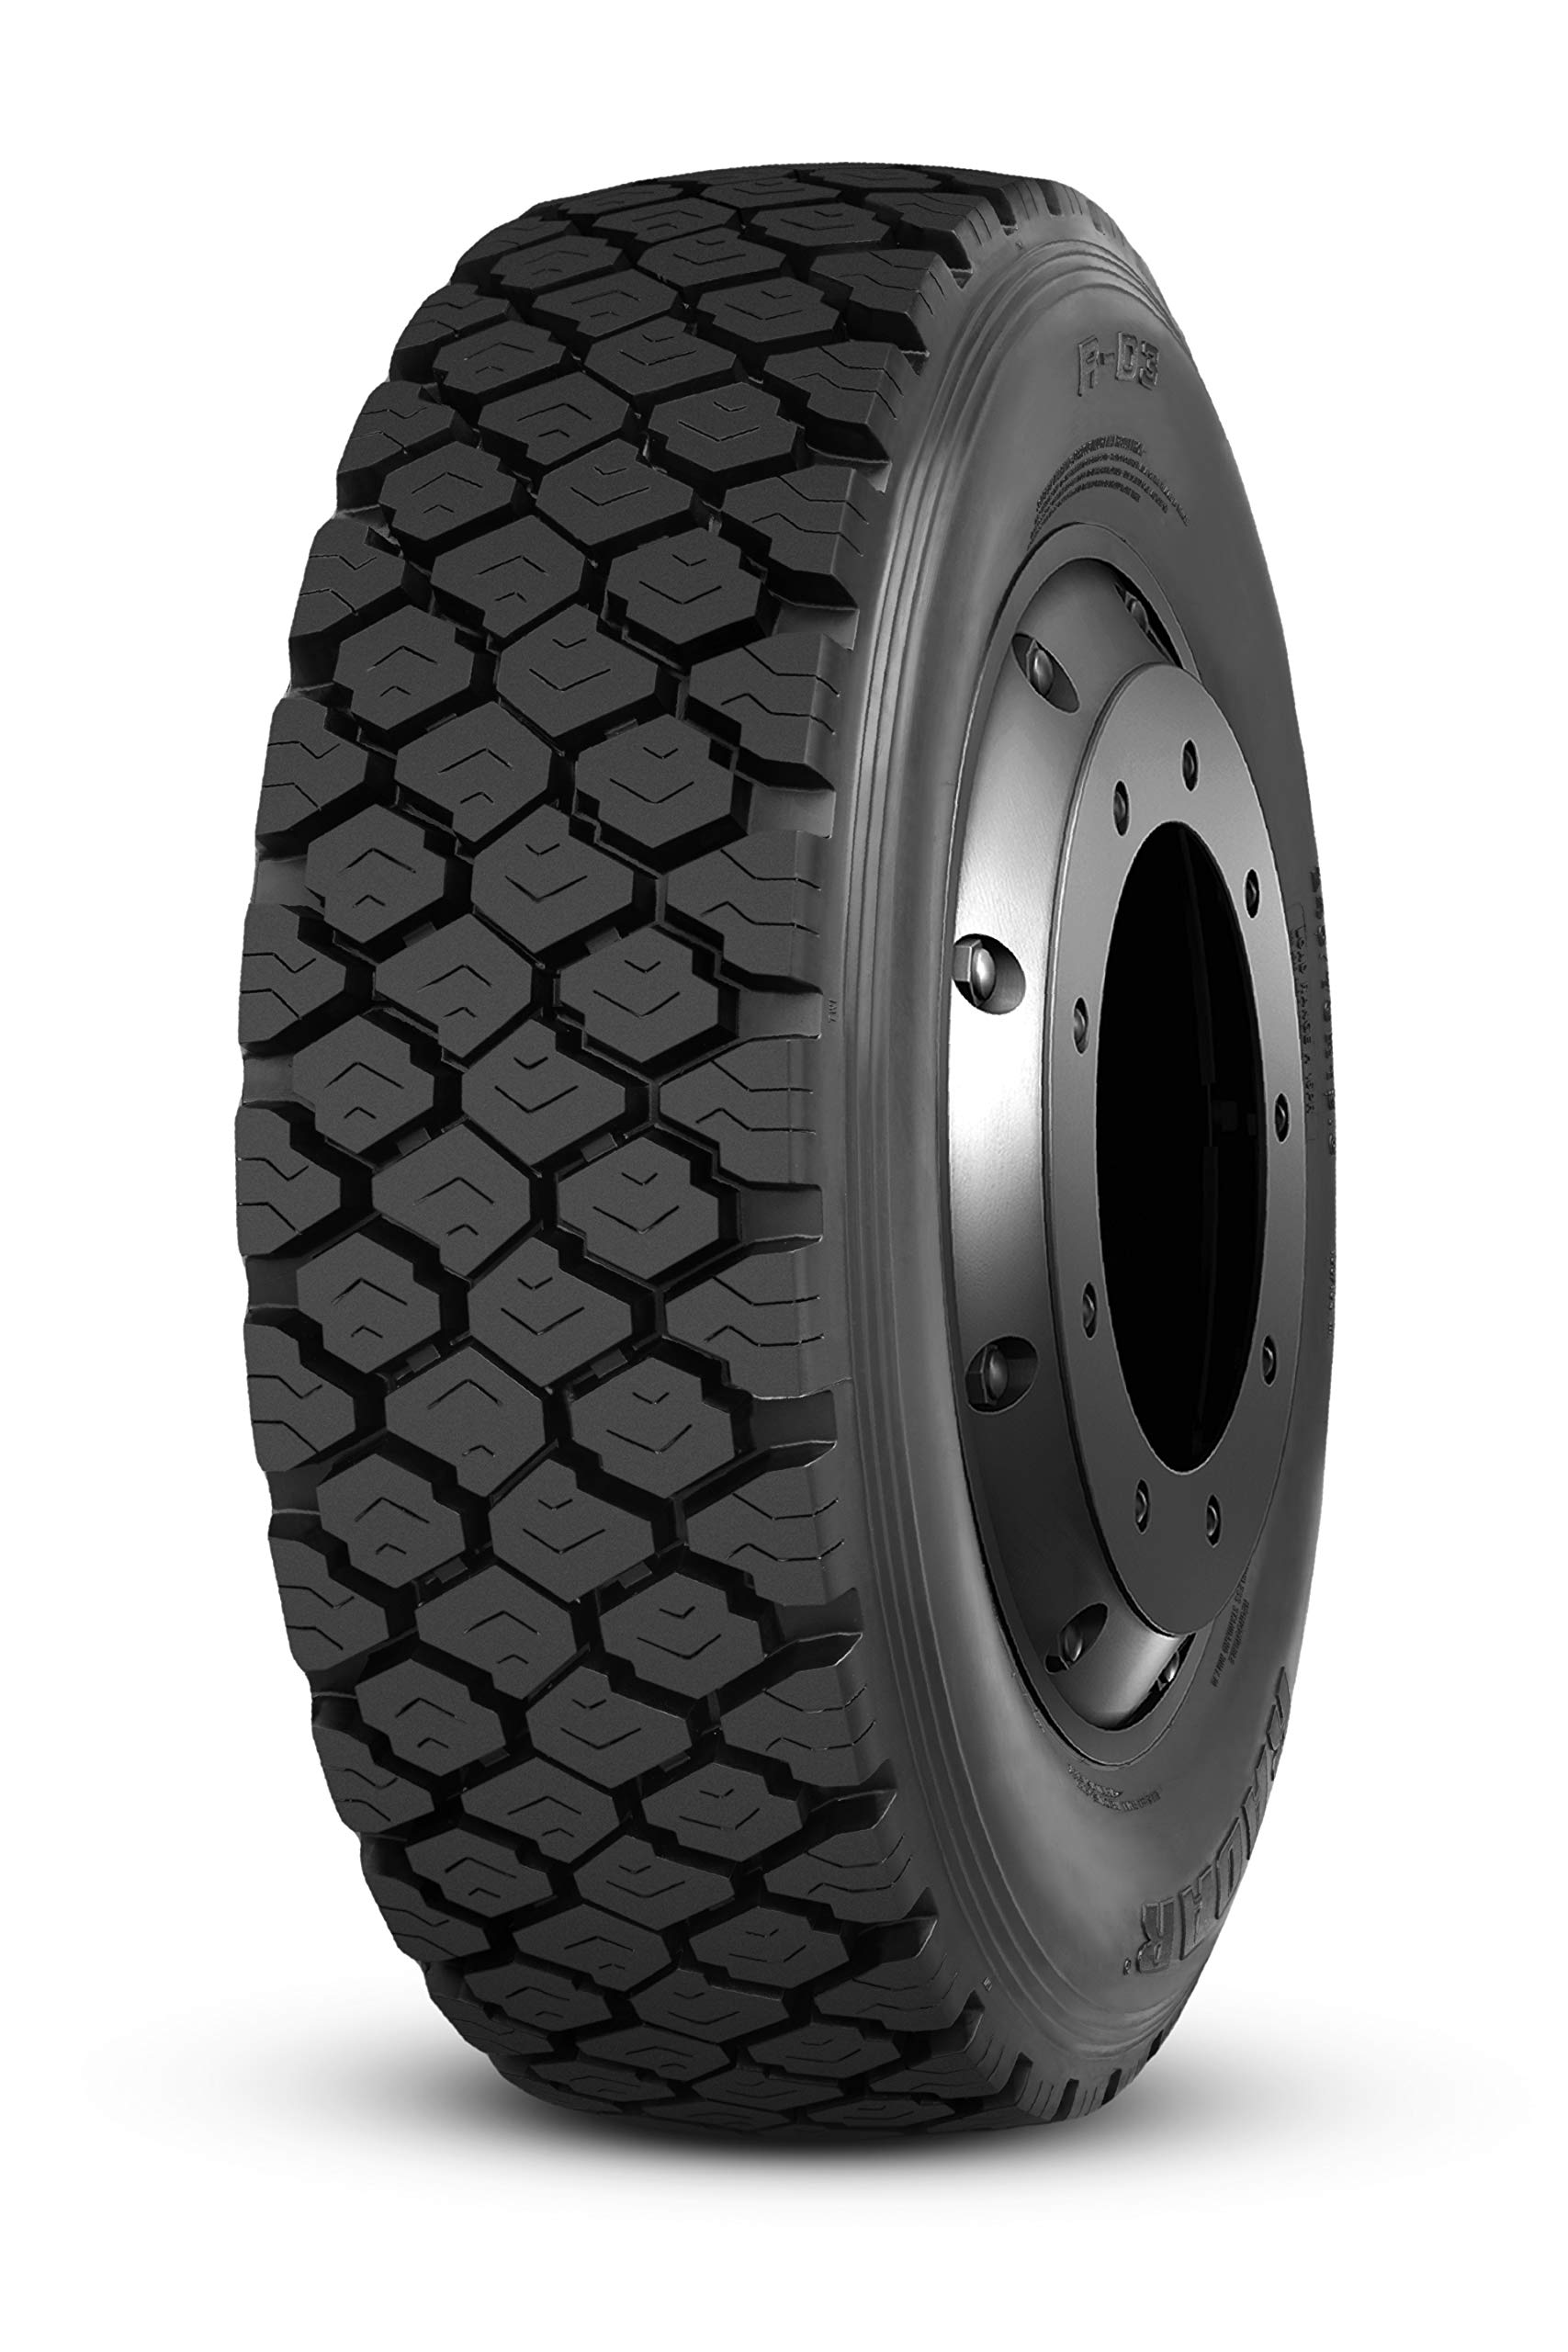 Radar RD3 Commercial Truck Radial Tire-225/70R19.5 128L 14-ply